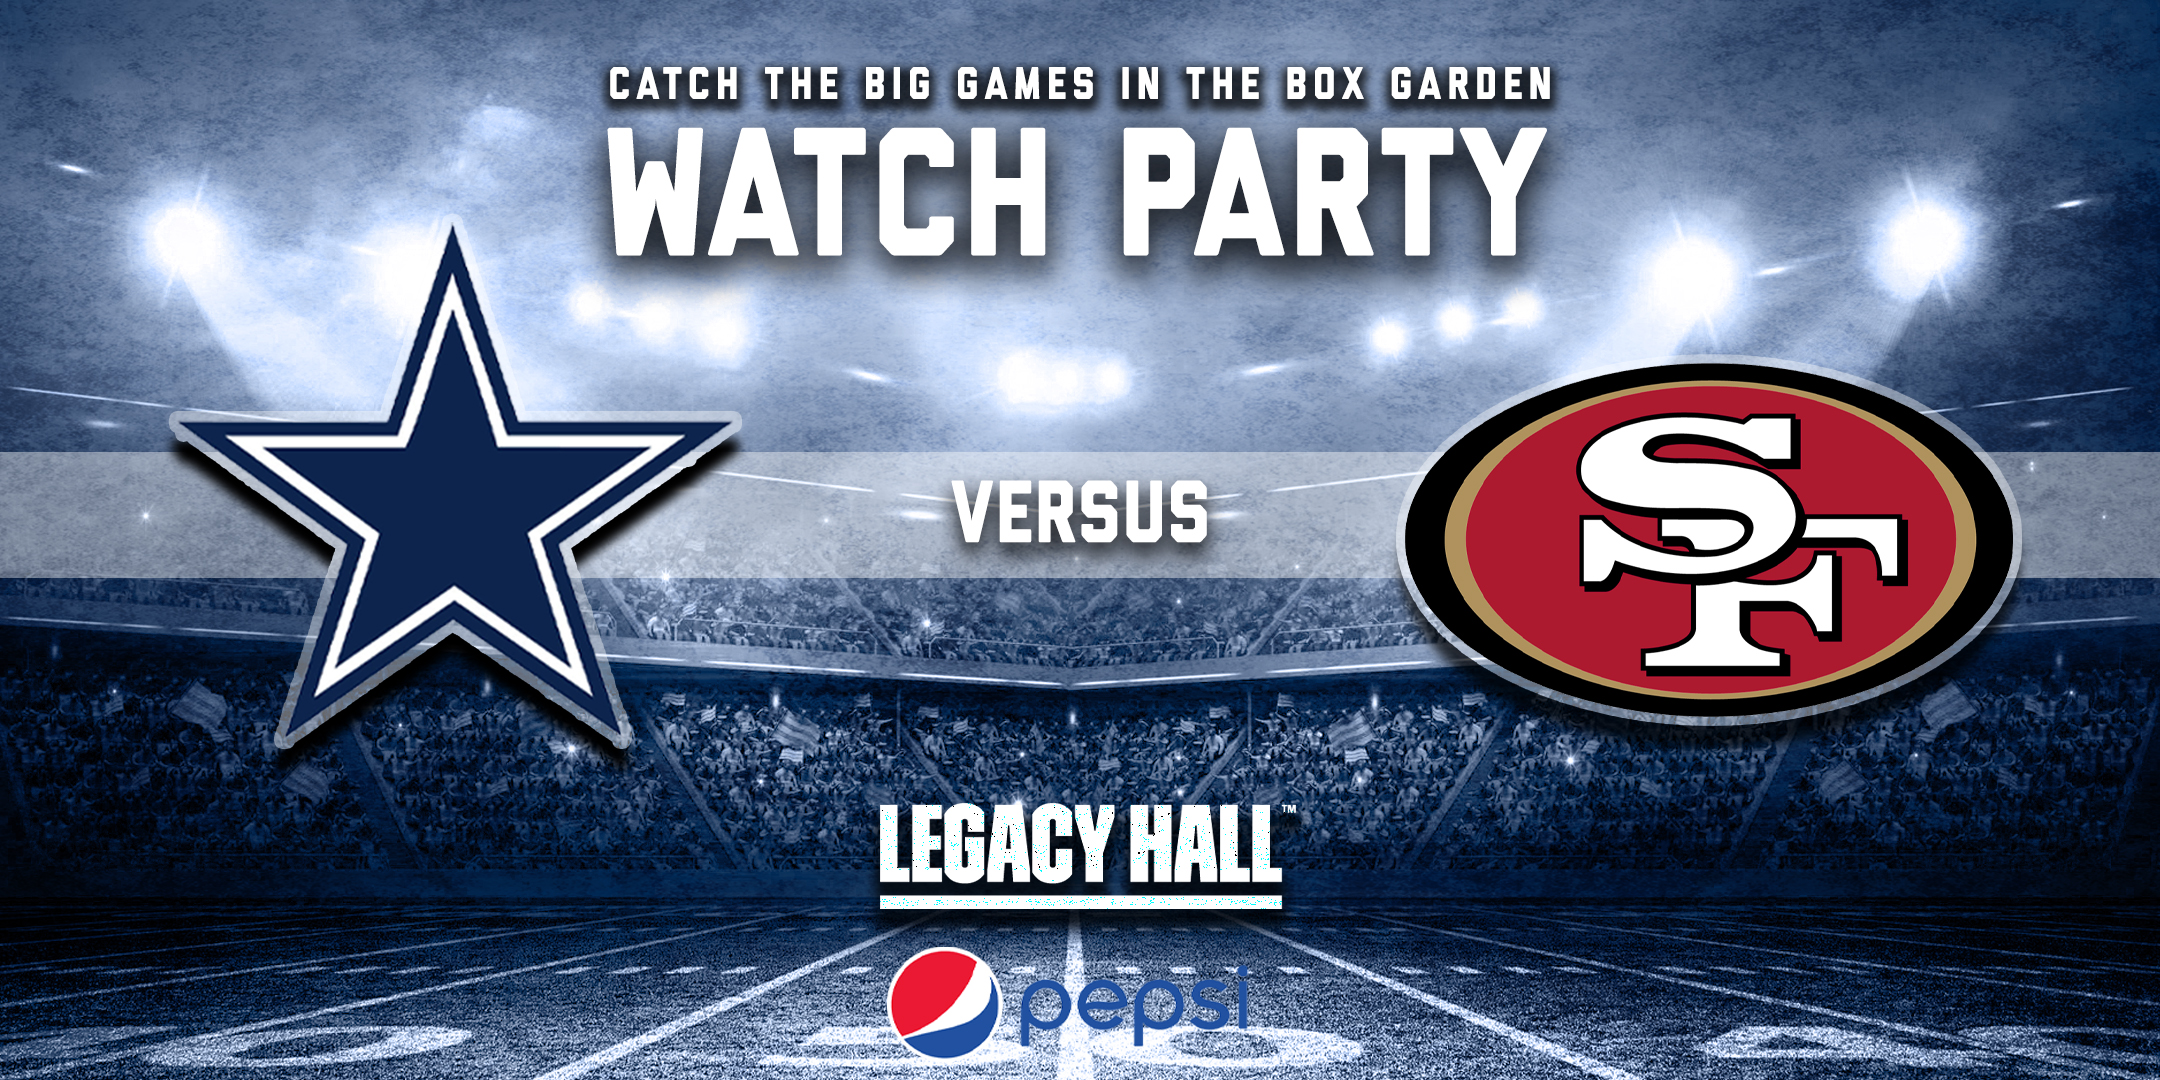 Promo image of Cowboys vs. 49ers Watch Party